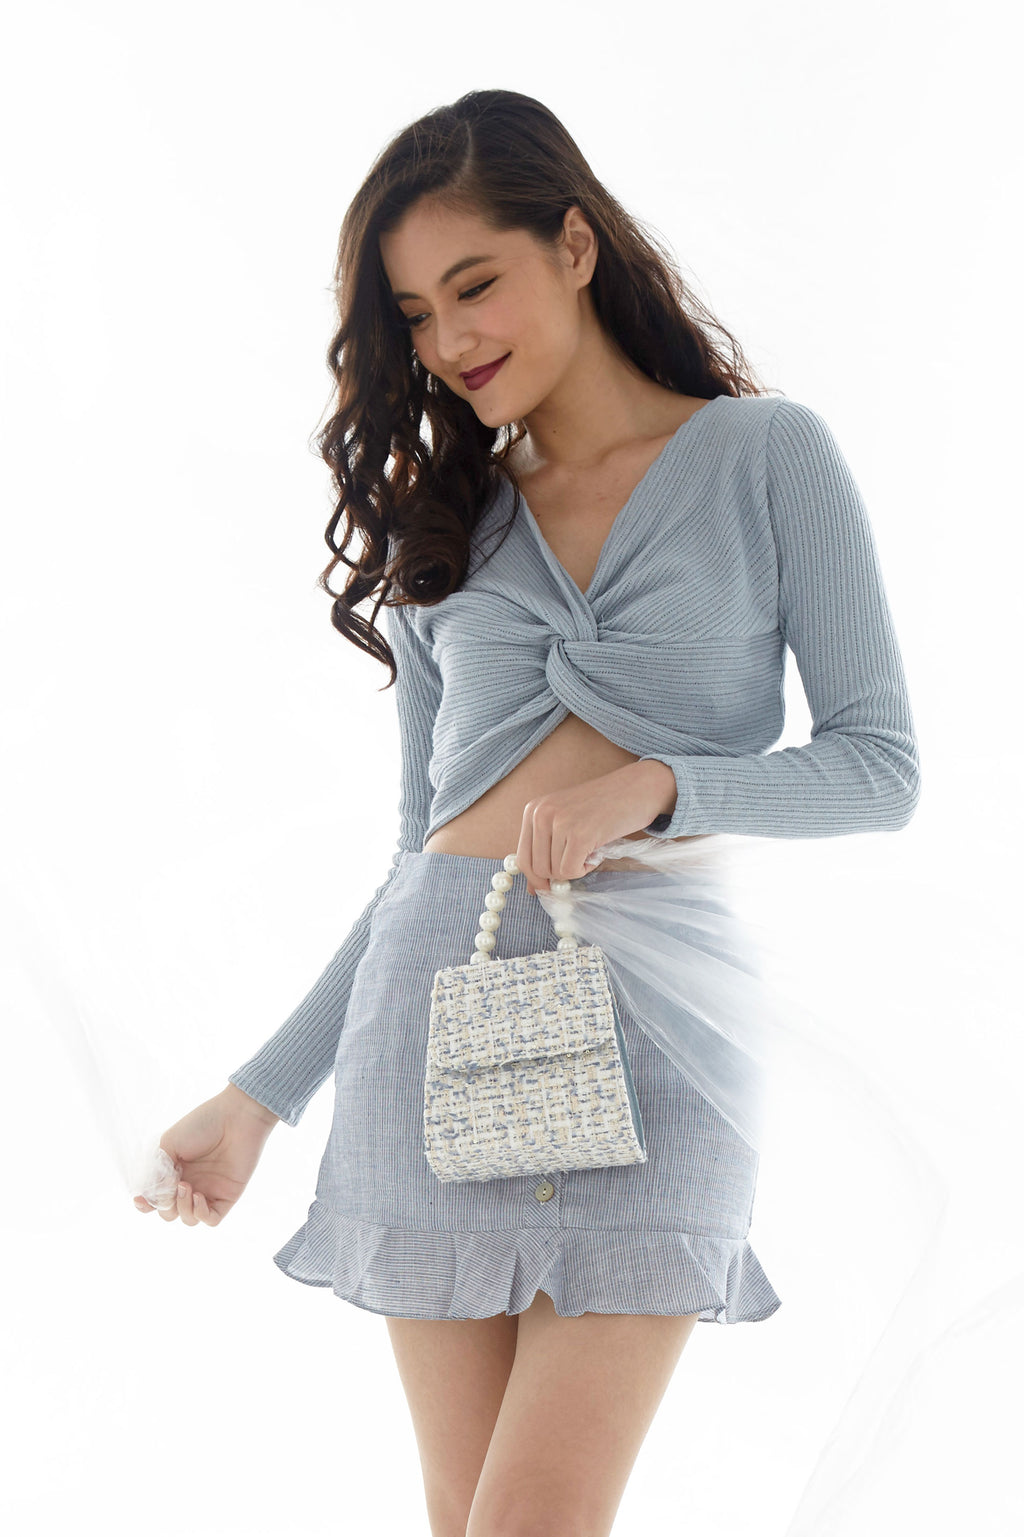 Seraphina Tweed Pearl Handbag in Powder Blue